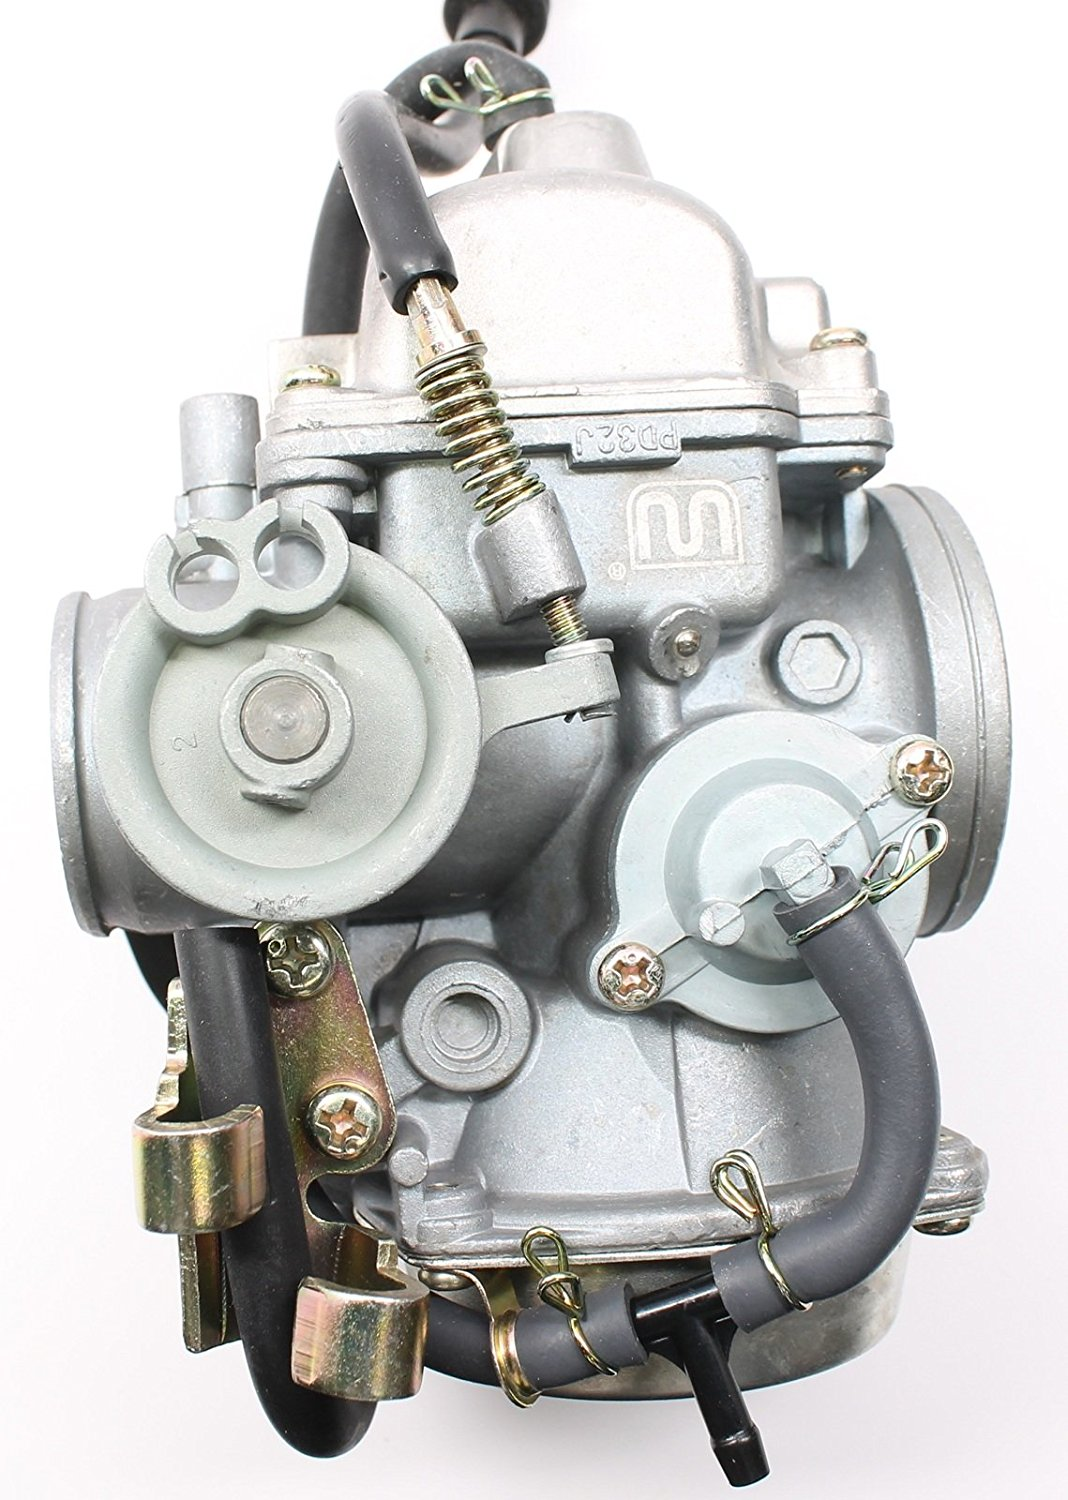 Watecooled 30MM CARBURETOR CARB GY6 250CC GO KART SCOOTER ATV